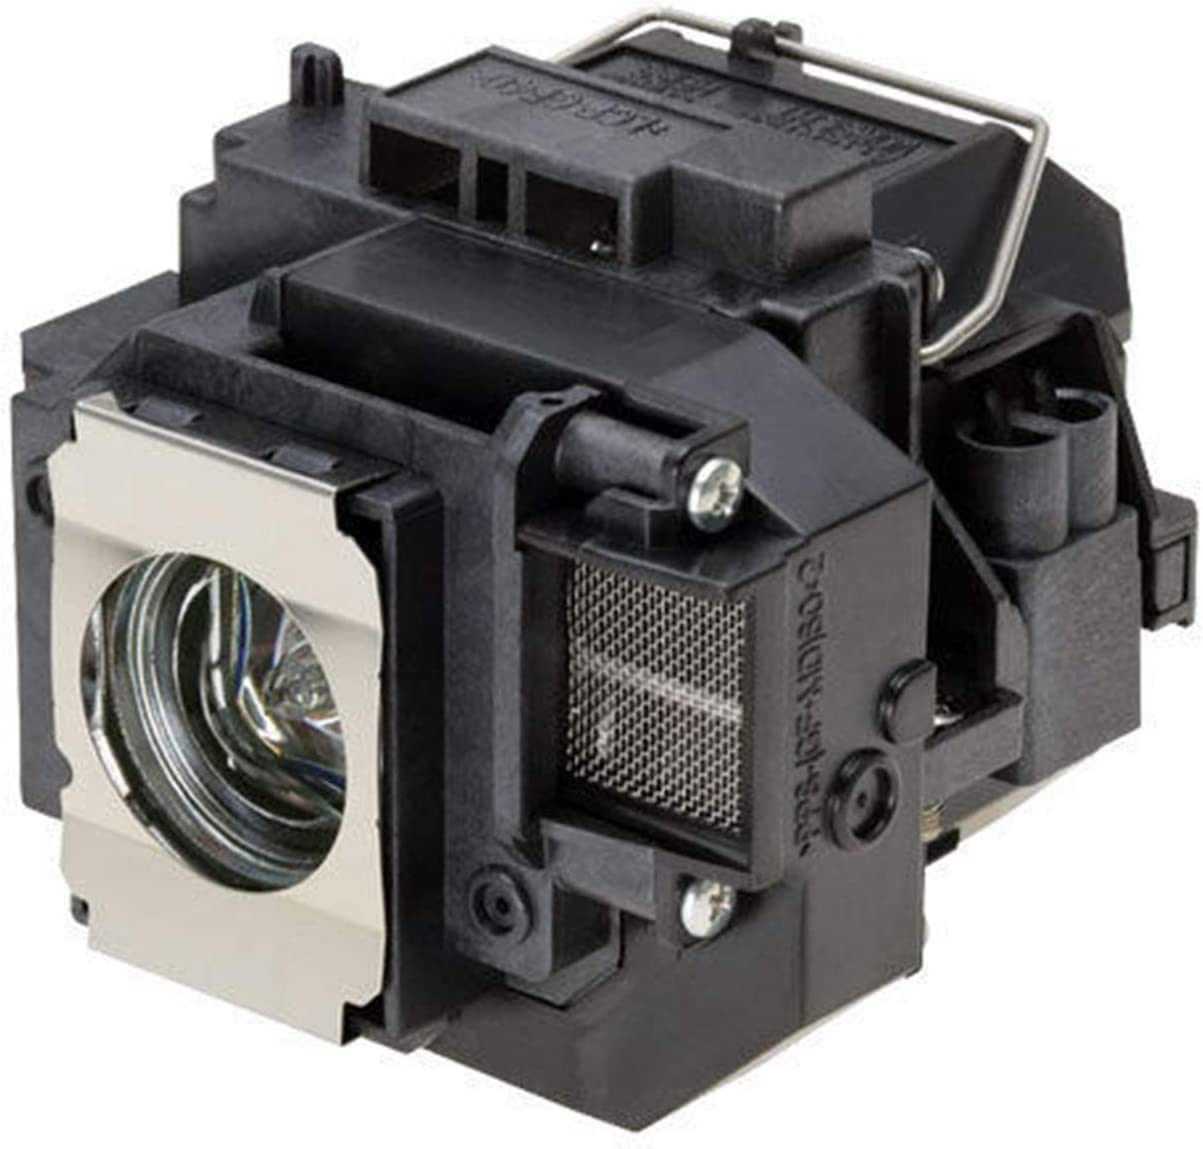 ELP-LP58 V13H010L58 Replacement Projector Lamp for EB-S10 EB-S9 EB-S92 EB-W10 EB-W9 EB-X10 EB-X9 EX5200 PowerLite 1220 PowerLite 1260 PowerLite S9 VS-200, Lamp with Housing by CARSN